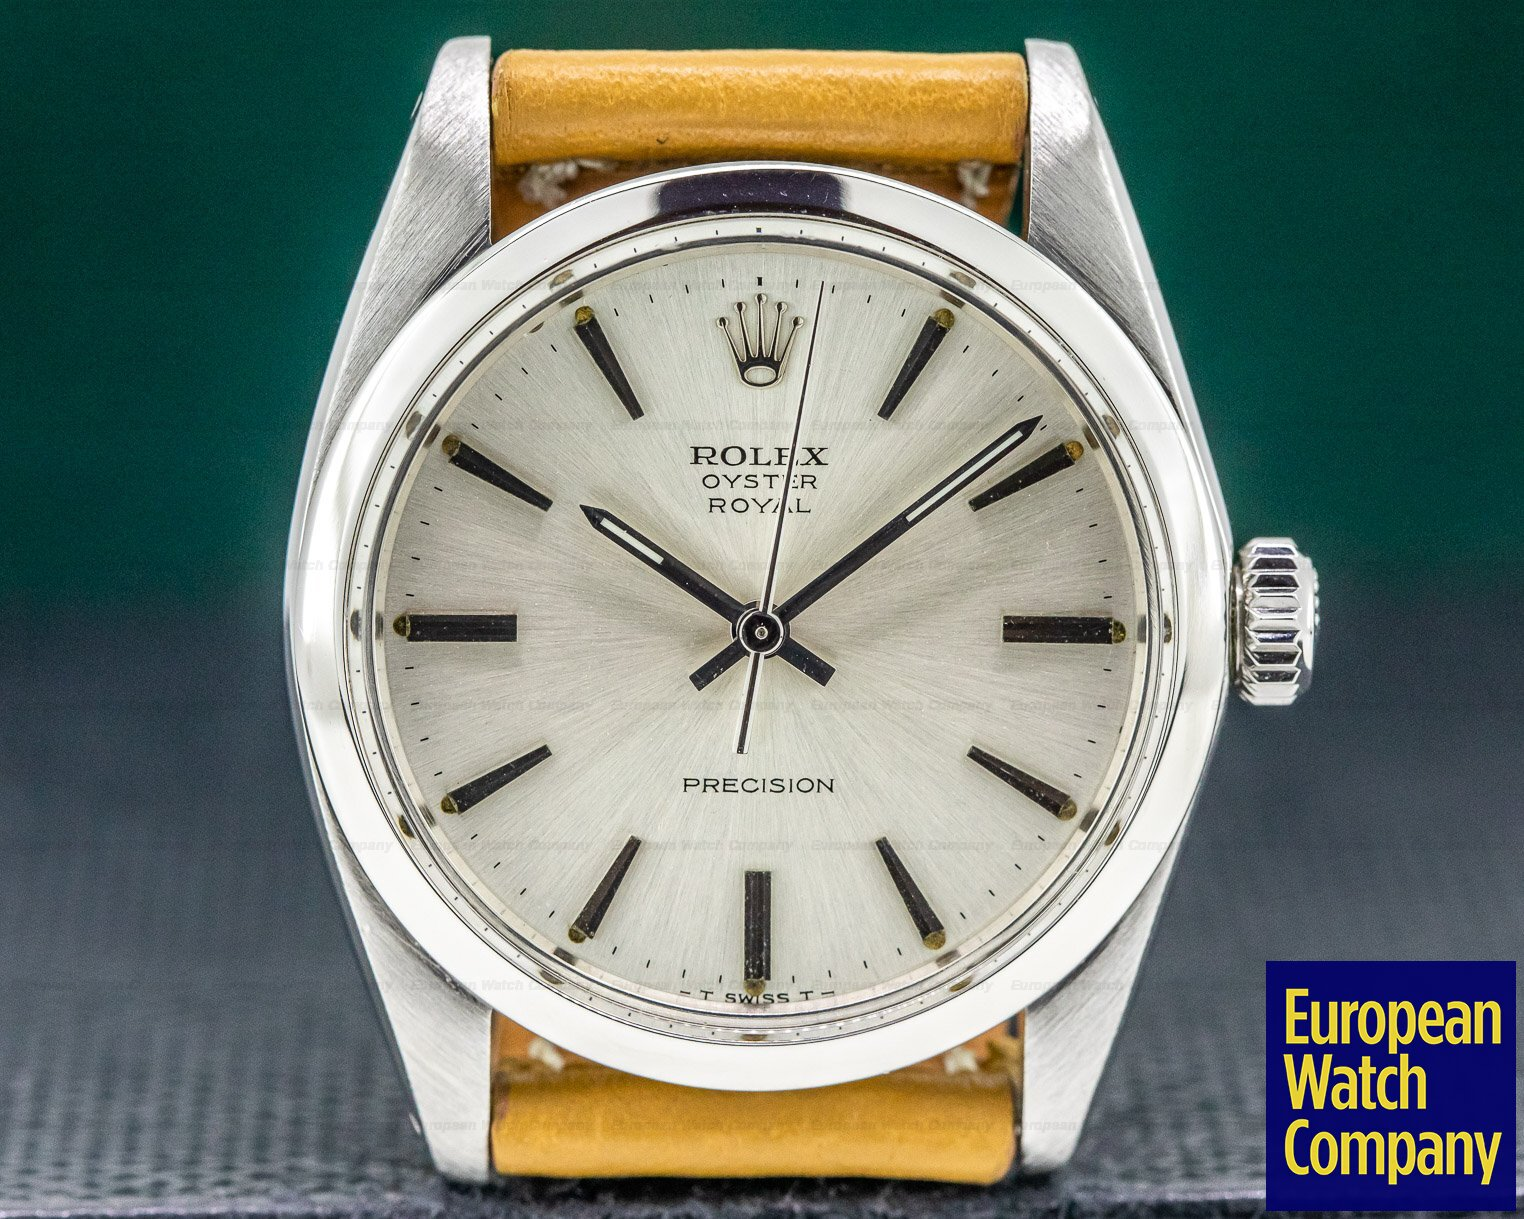 Rolex 6426 Oyster Precision Royal SS Silver Dial 34MM